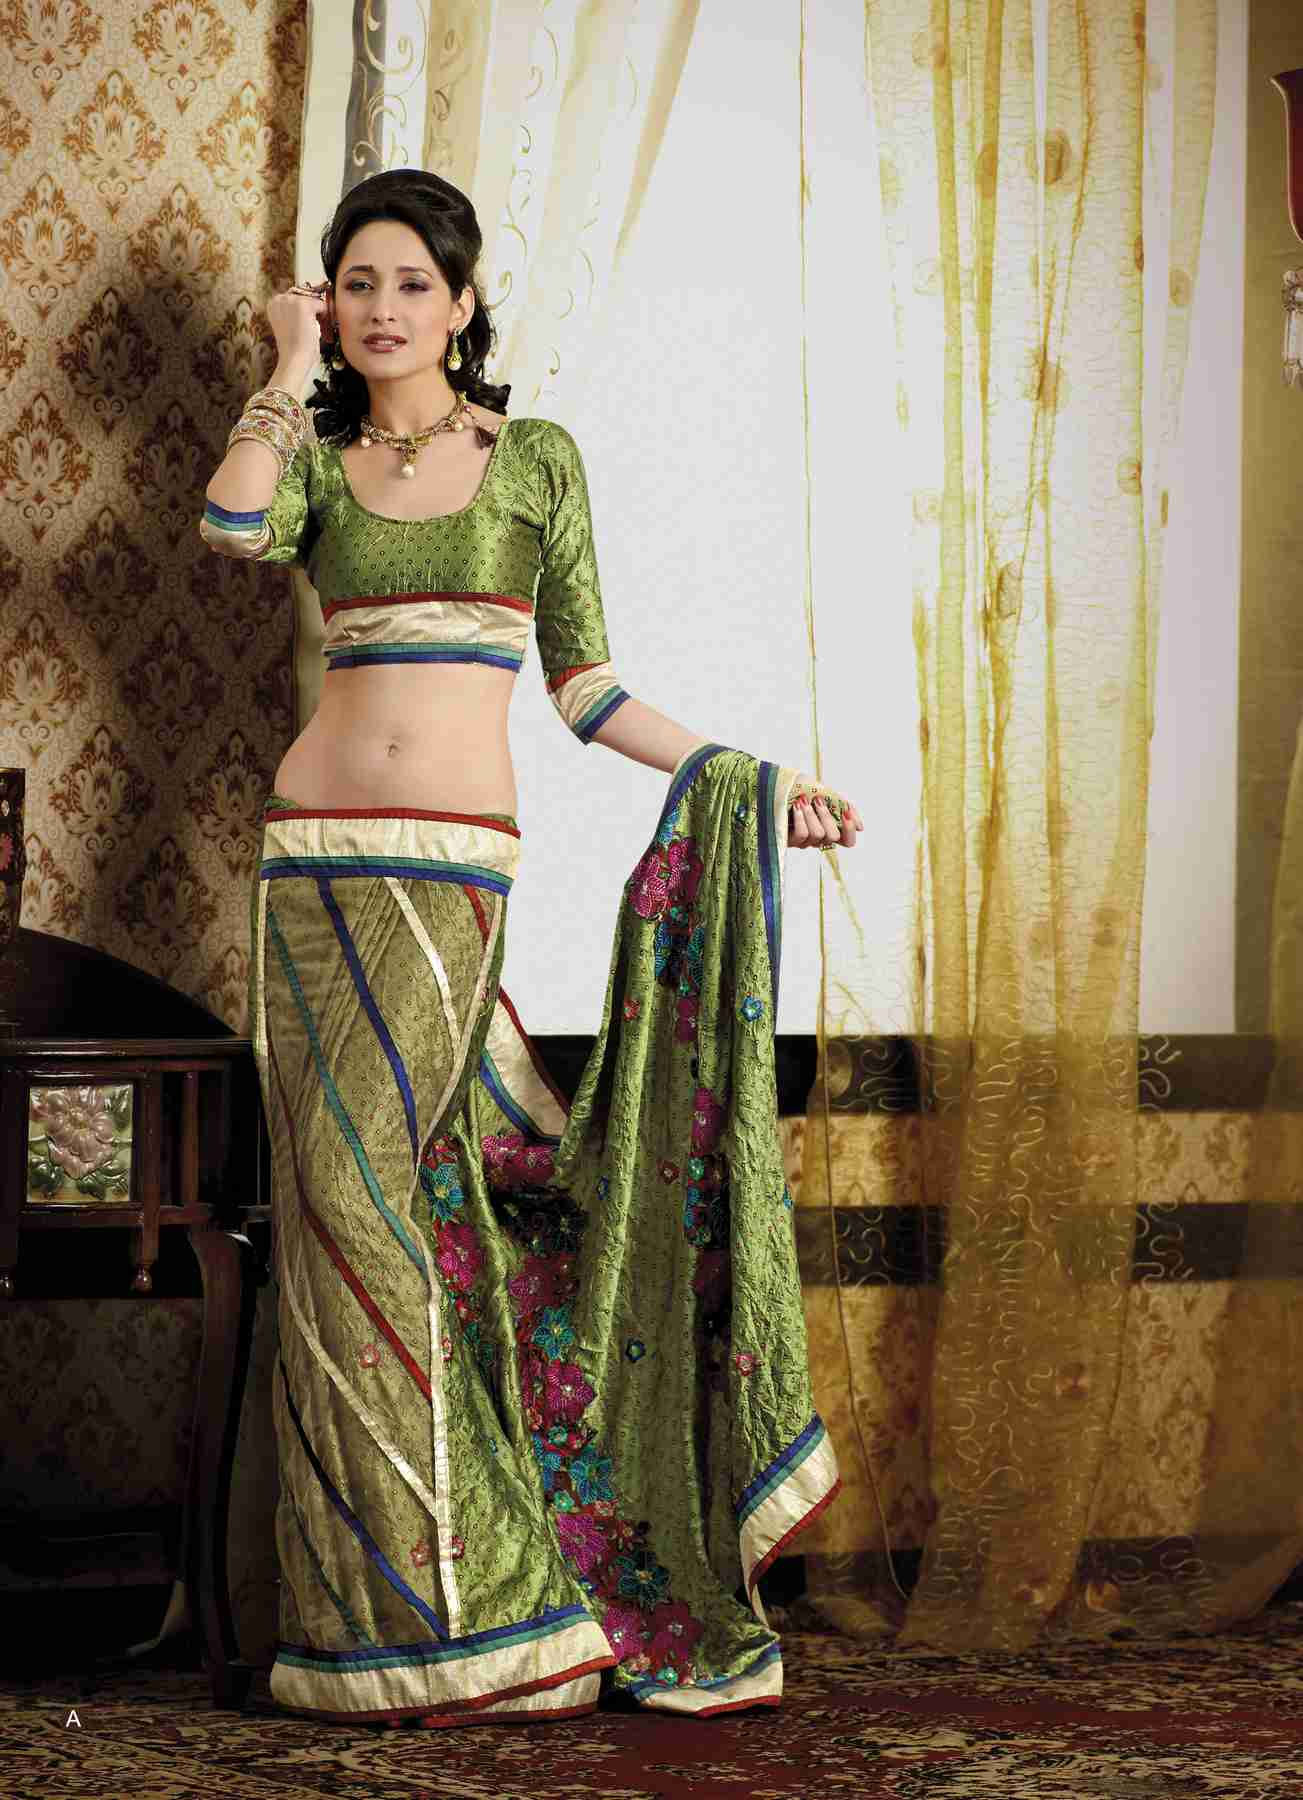 Indian Selections Chunni Olive Green Faux Crepe Luxury Party Wear Sari saree at Sears.com